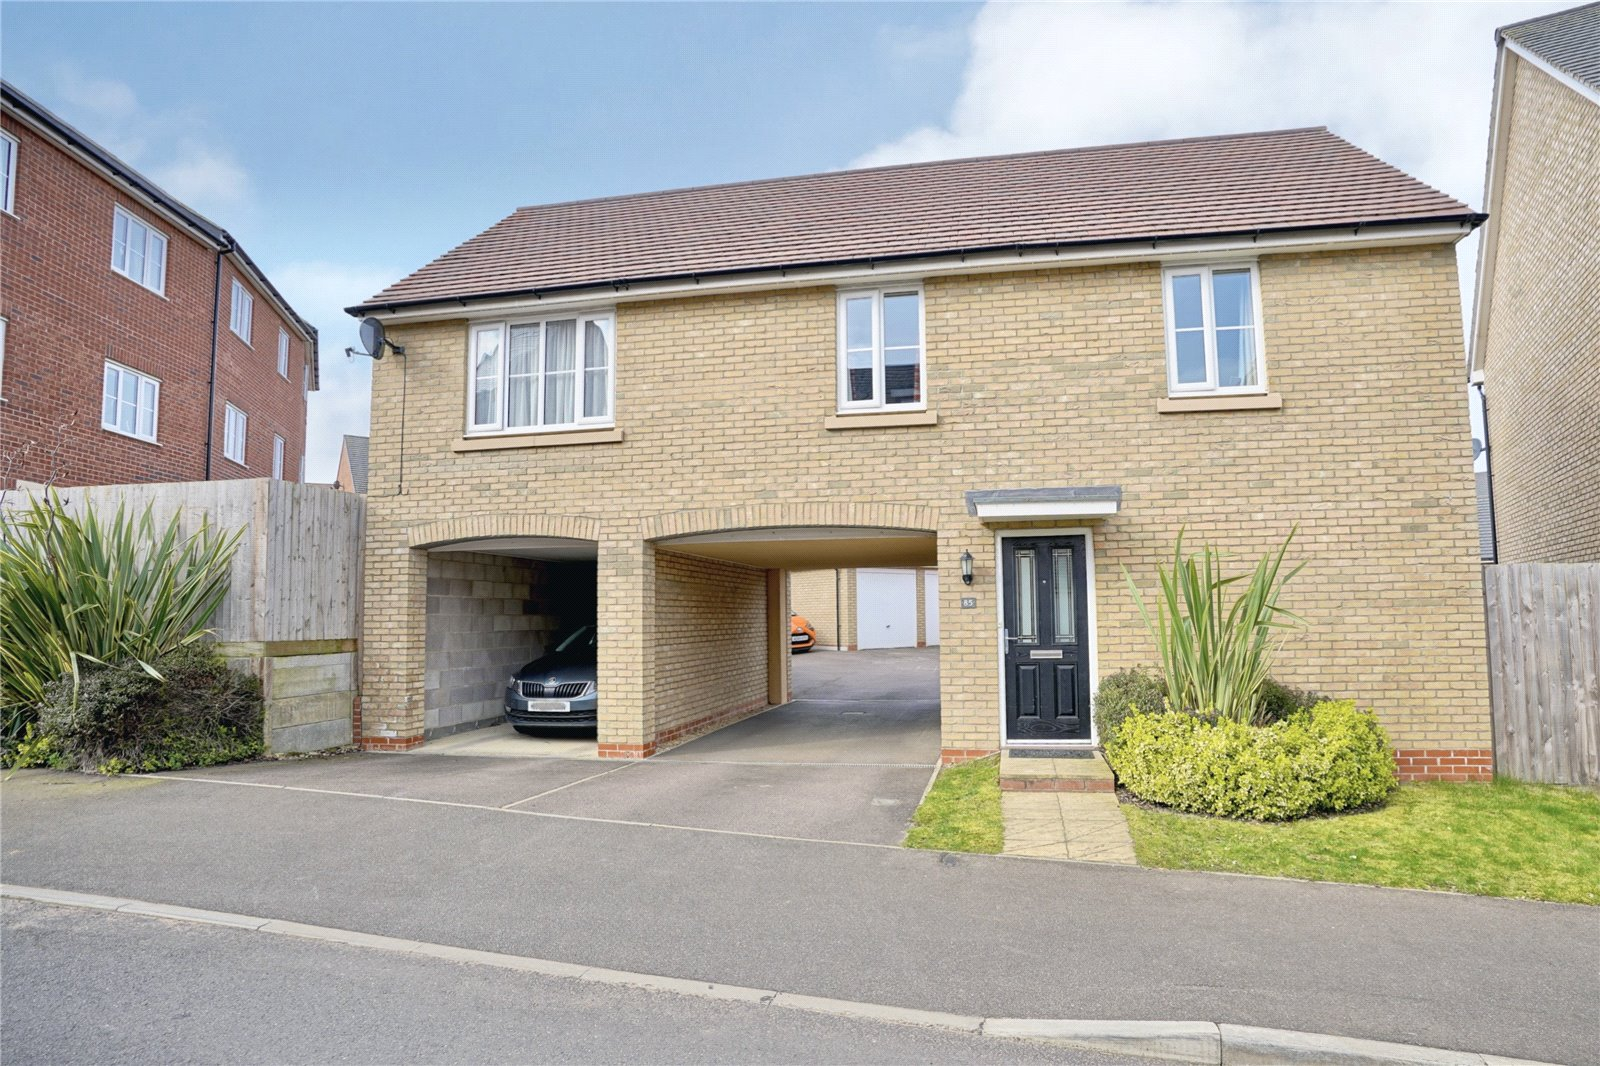 2 bed apartment for sale in Papworth Everard, CB23 3AB  - Property Image 1